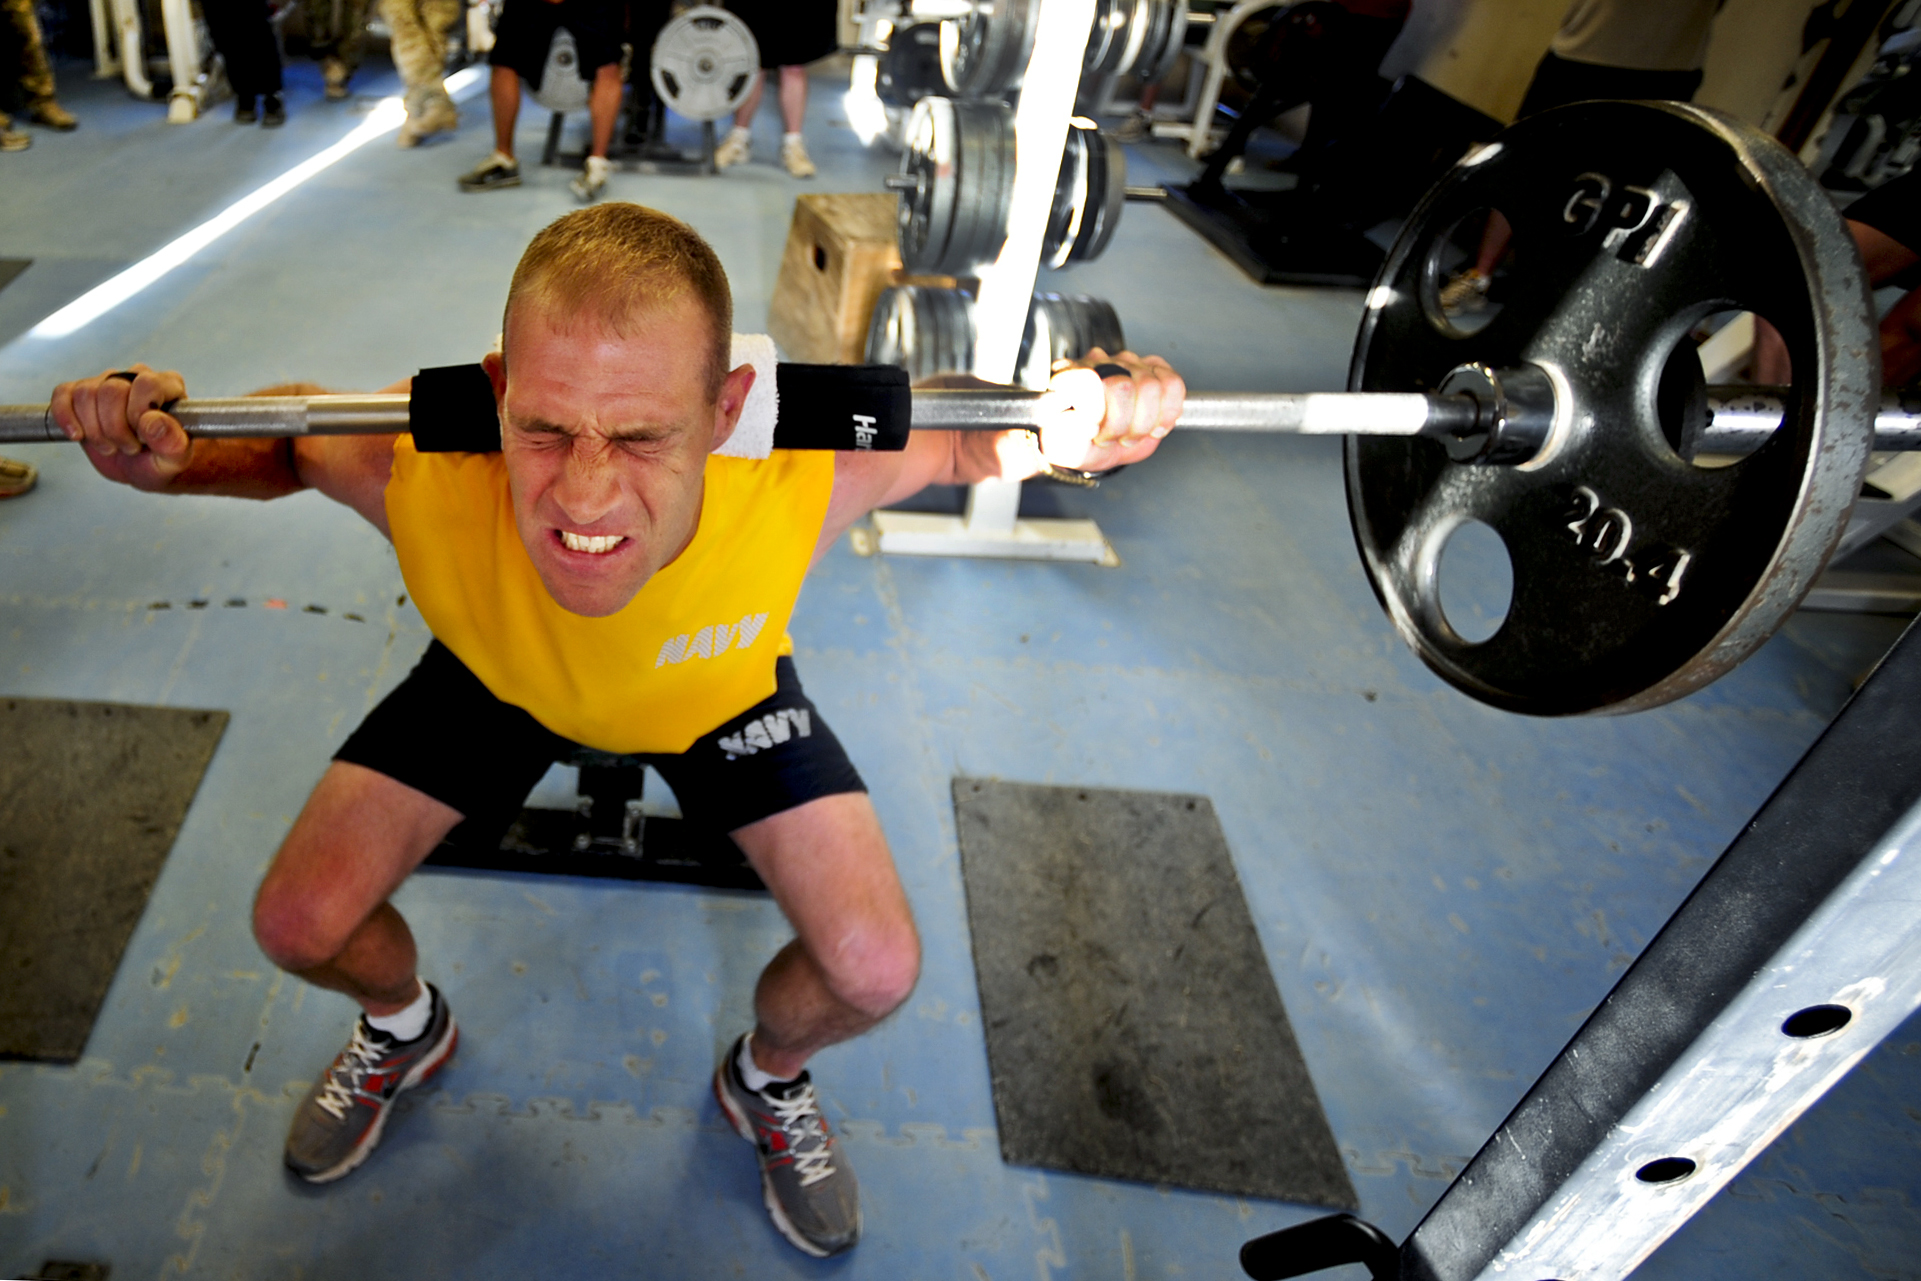 weight training essays Published: tue, 09 jan 2018 this essay will particular focus on the links between a child development and training load by critically discussing, bone development, muscle mass and strength, menstruation in young females, issues of obesity and physical inactivity, aerobic and anaerobic exercise, and injury.